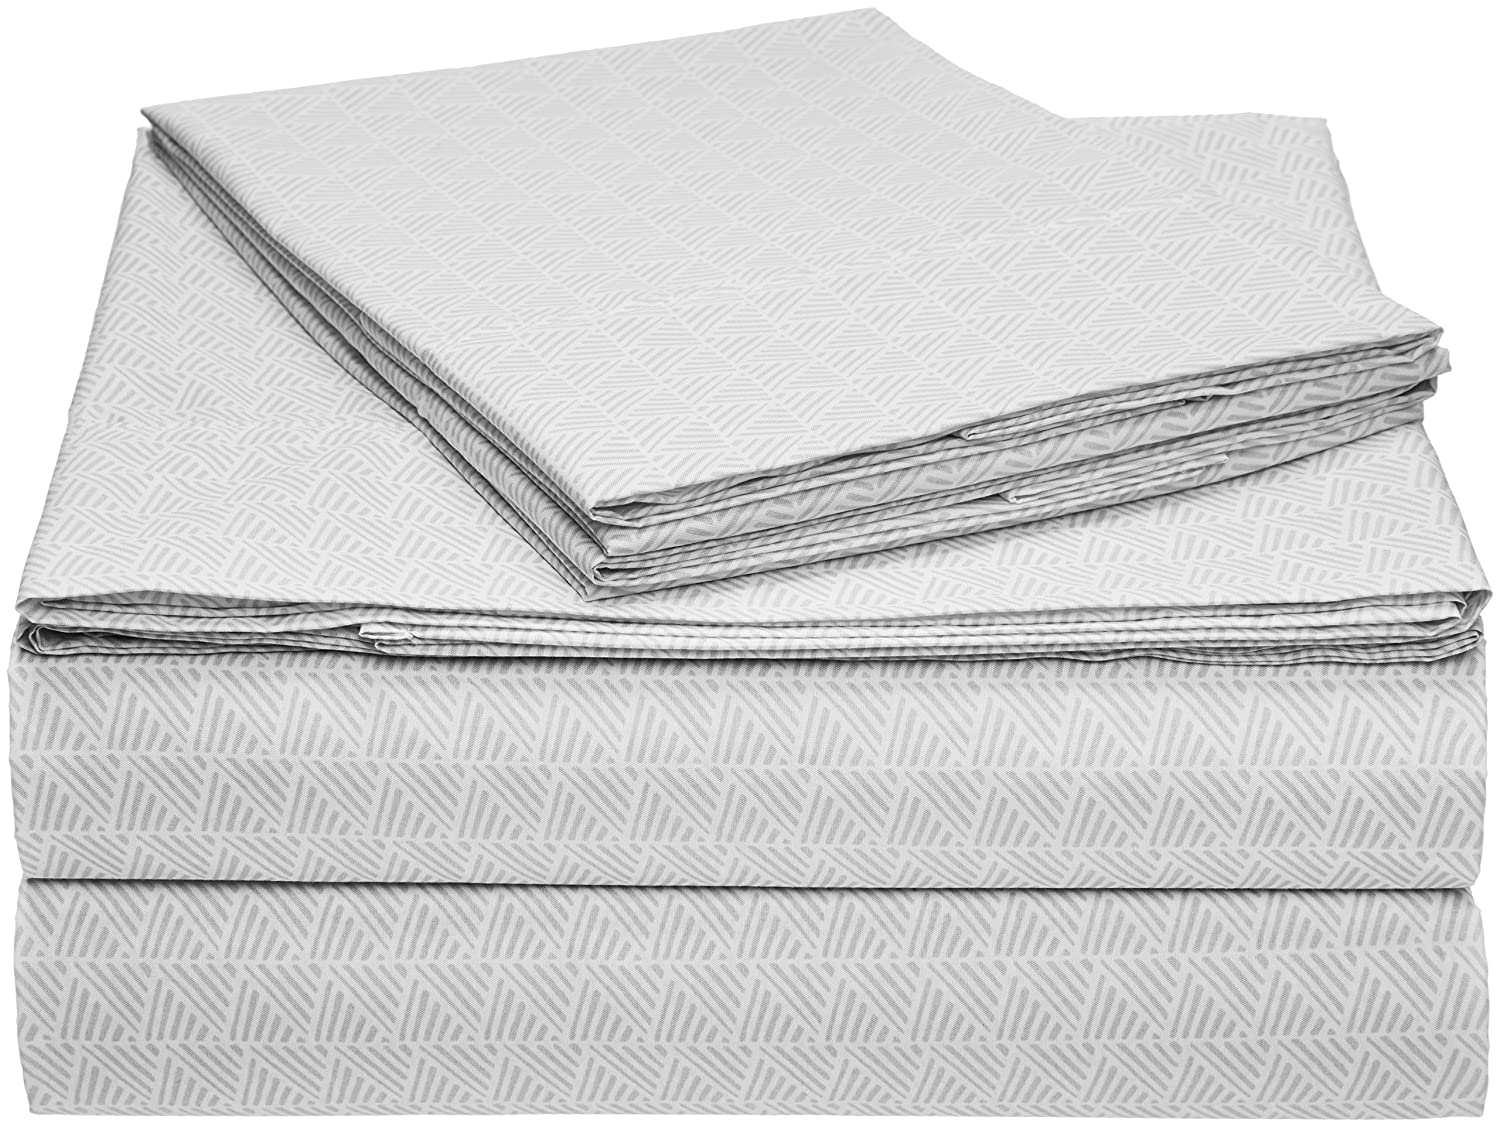 AmazonBasics Microfiber Sheet Set - Full, Grey Crosshatch